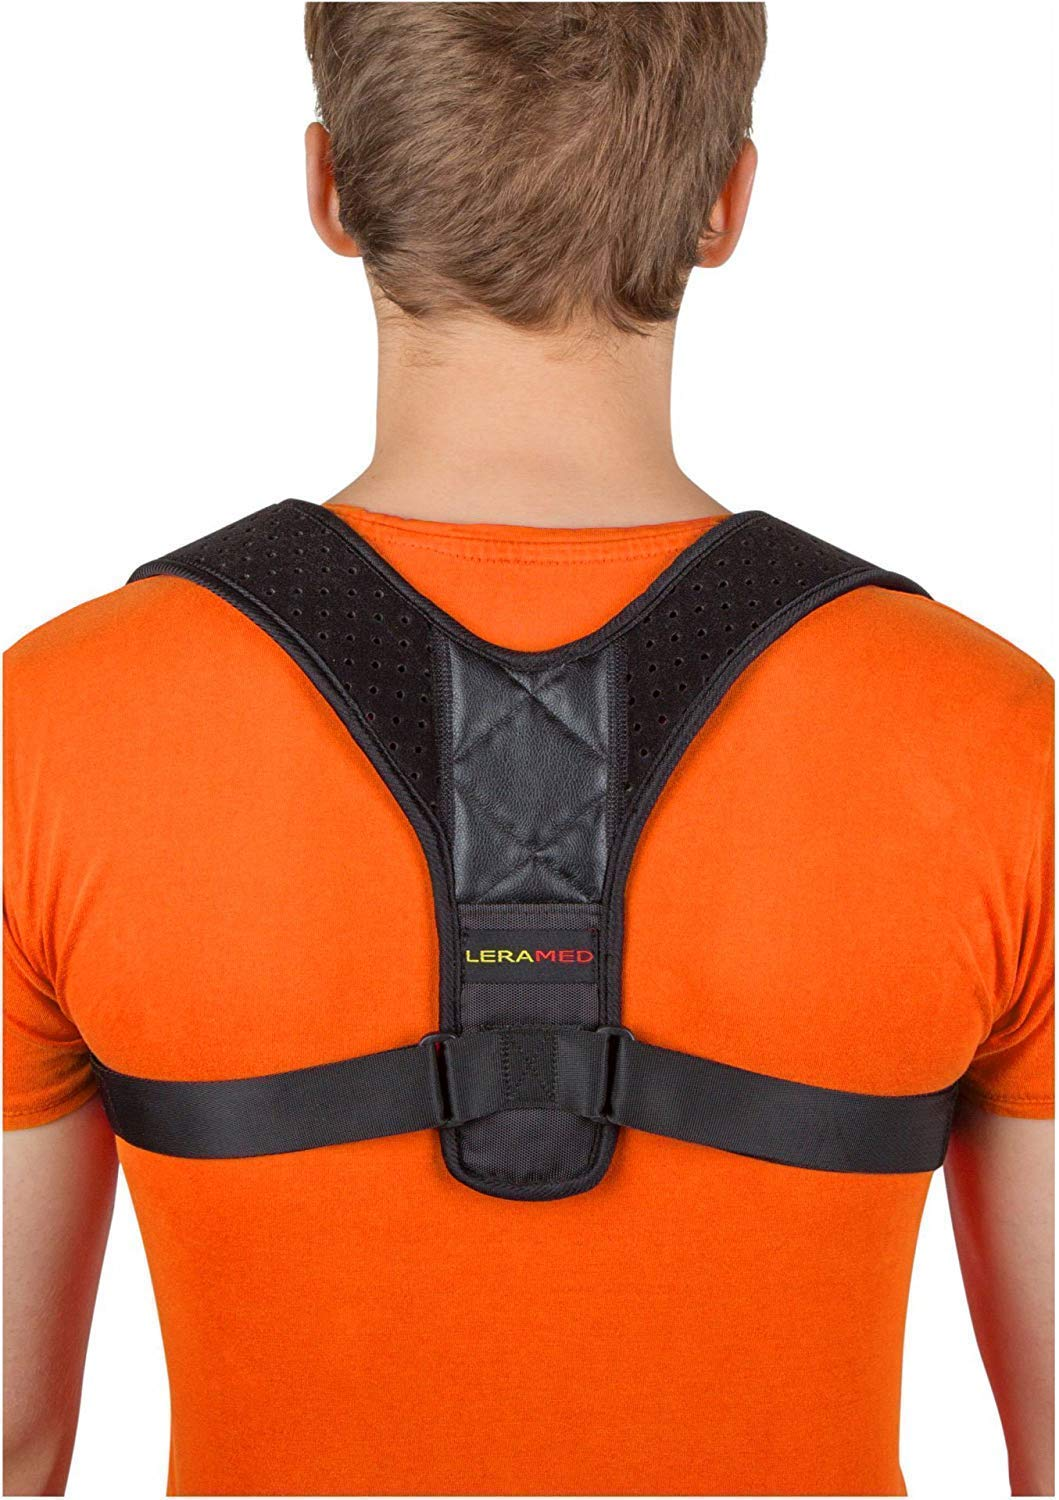 ORISOIL [New 2019] Posture Corrector for Women Men - FDA Approved Back Brace - Posture Brace - Effective Comfortable Adjustable Posture Correct Brace - Posture Support - Kyphosis Brace